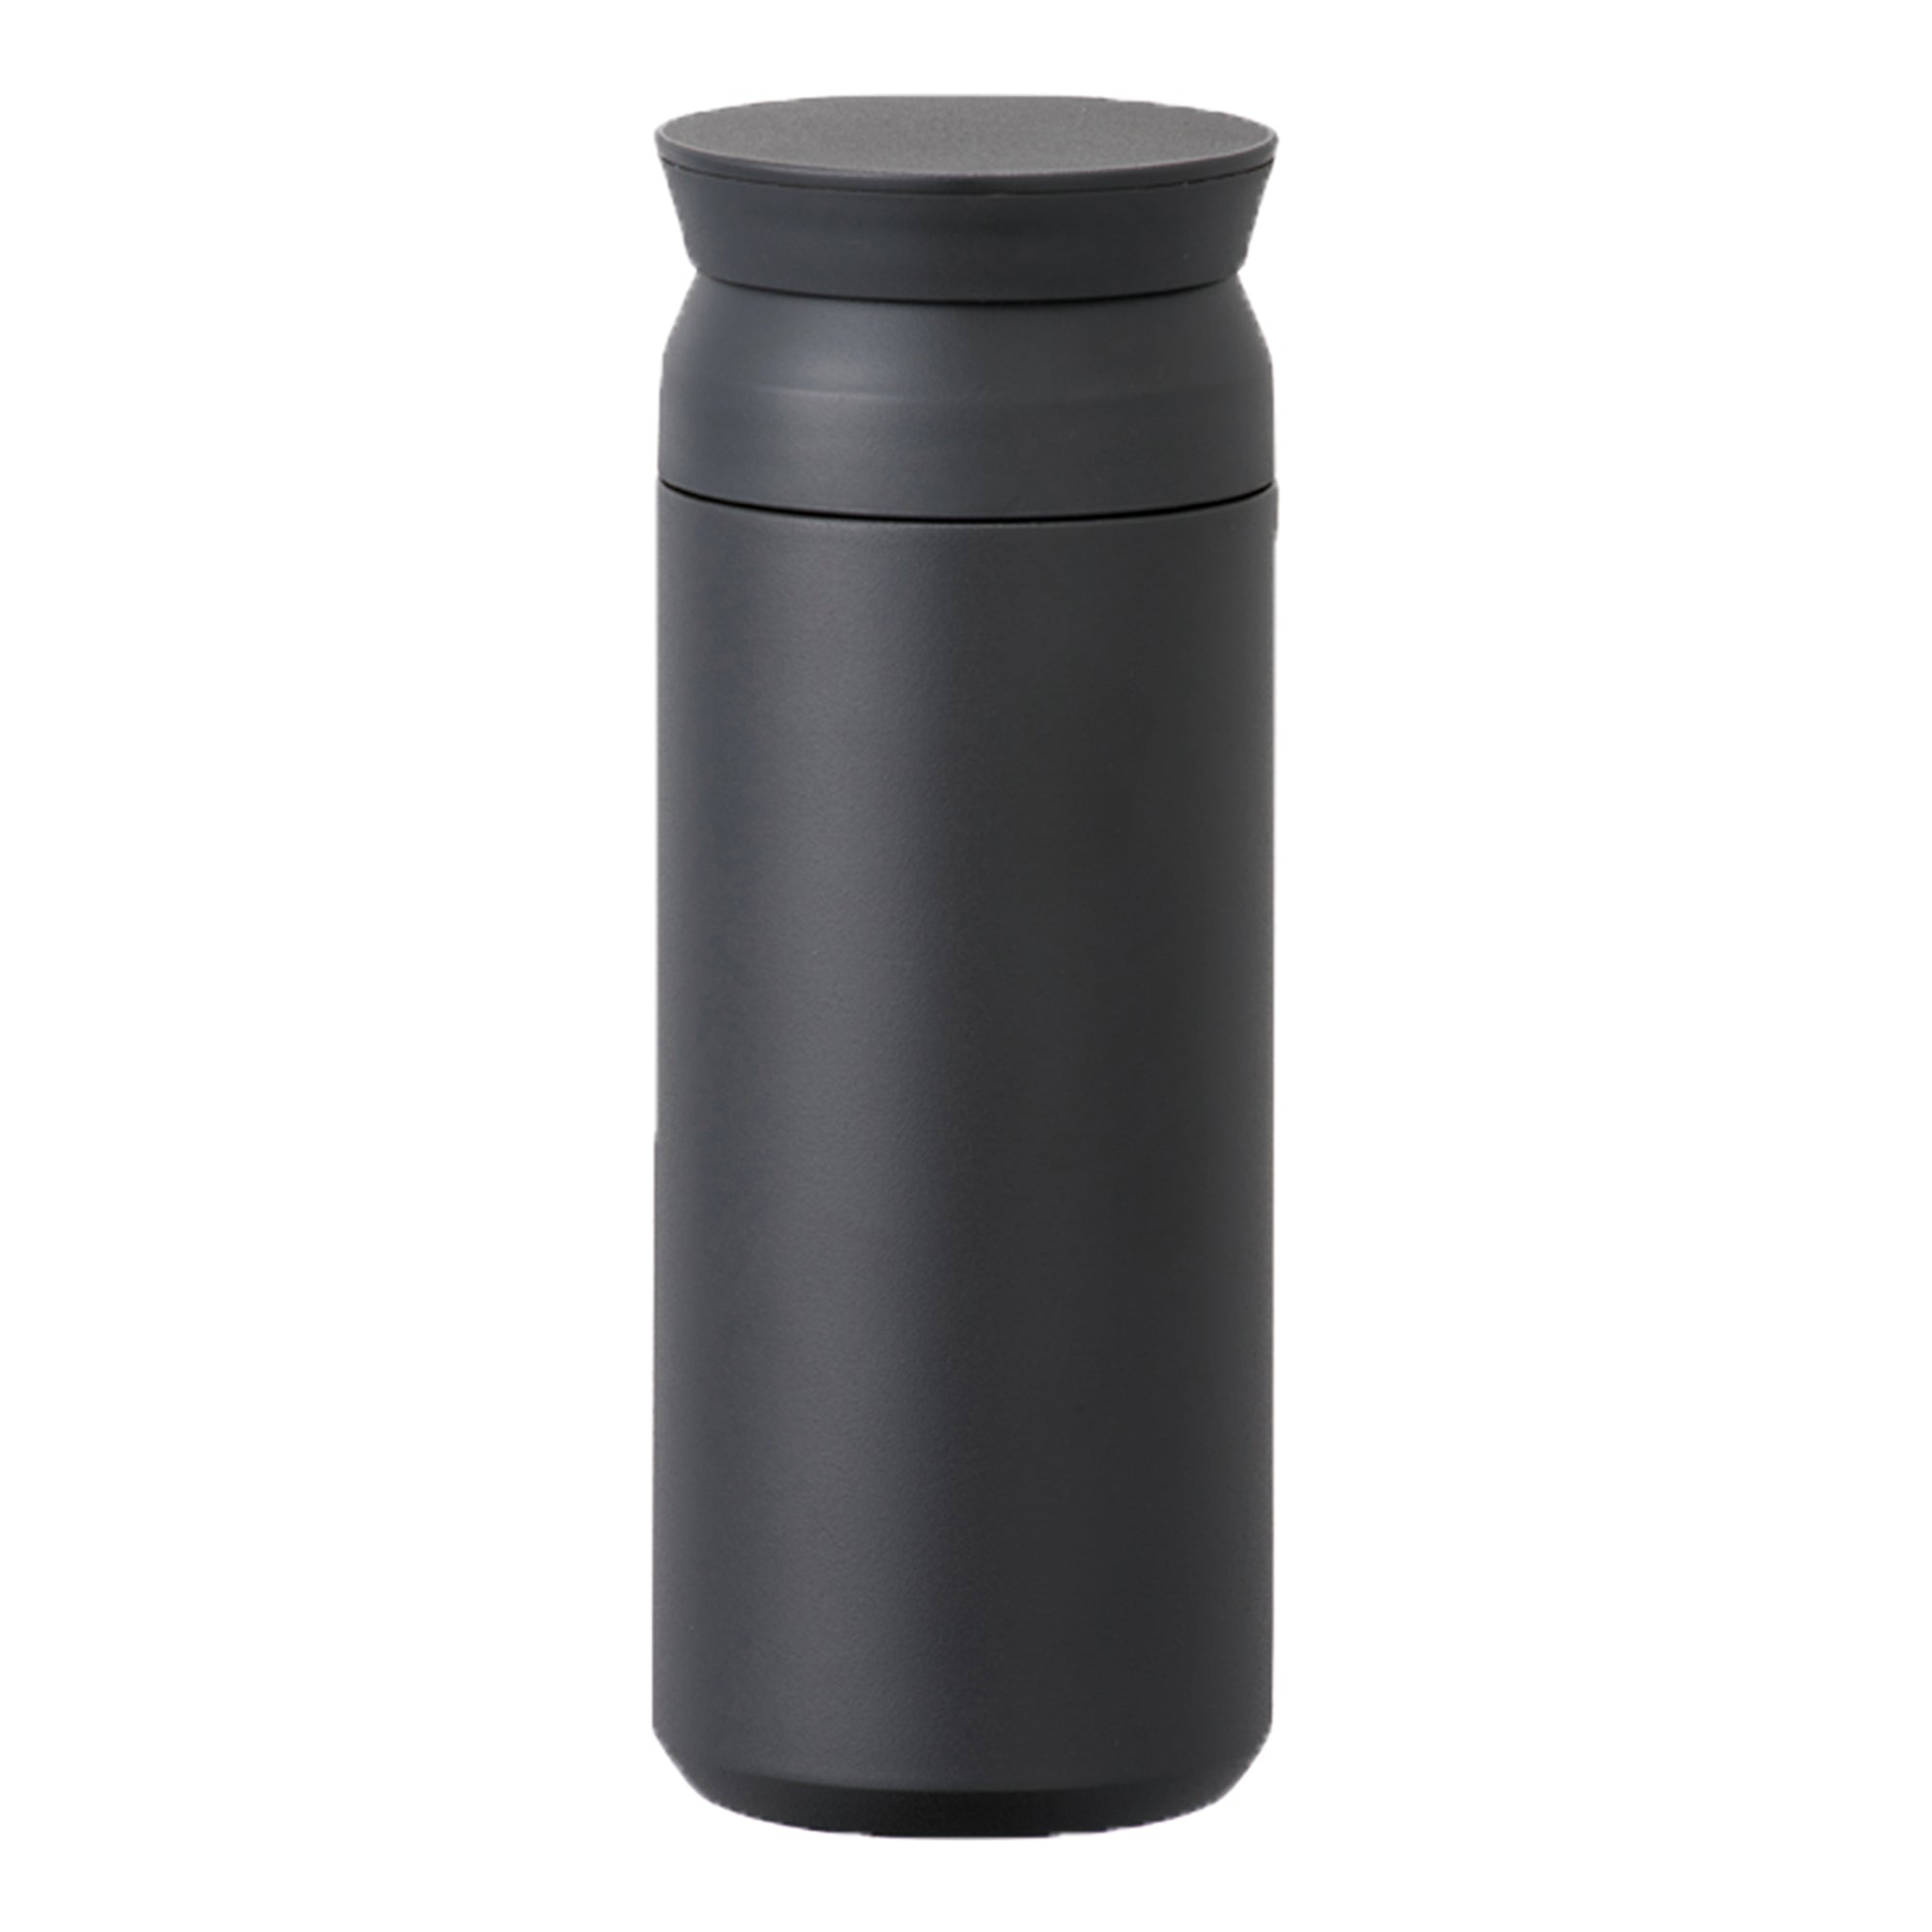 Kinto Tumbler Black 350ml - Espresso Gear